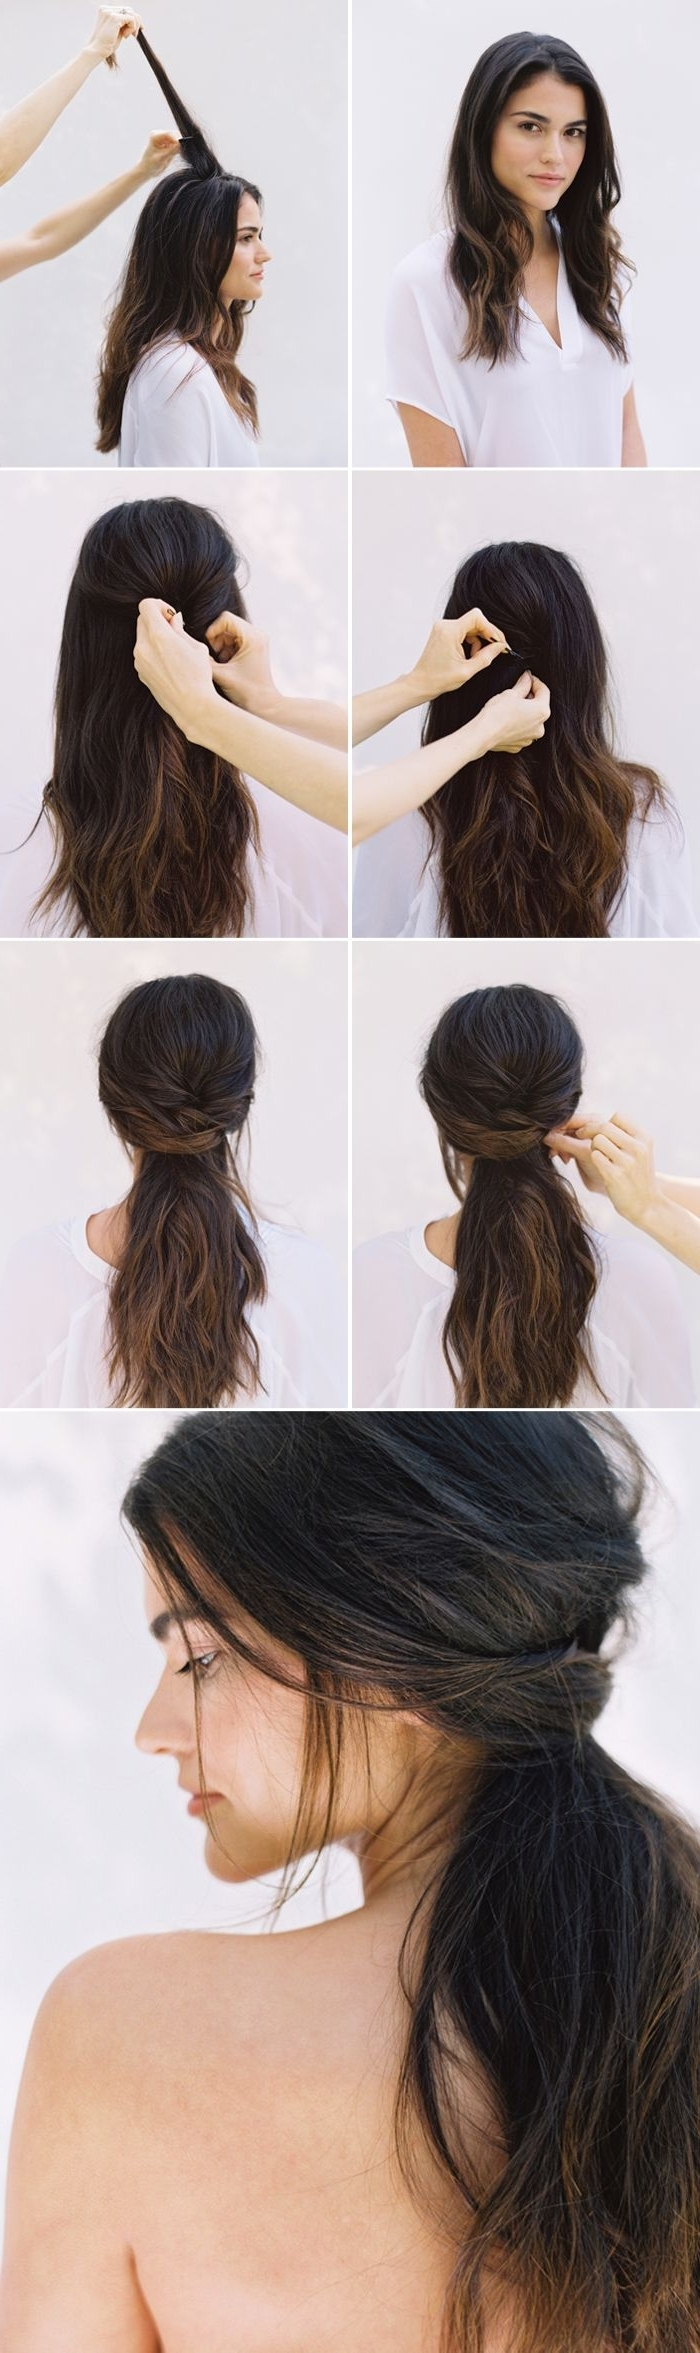 232 Best Wedding Hairstyles Images On Pinterest Pertaining To Latest Diy Wedding Updos For Long Hair (View 3 of 15)